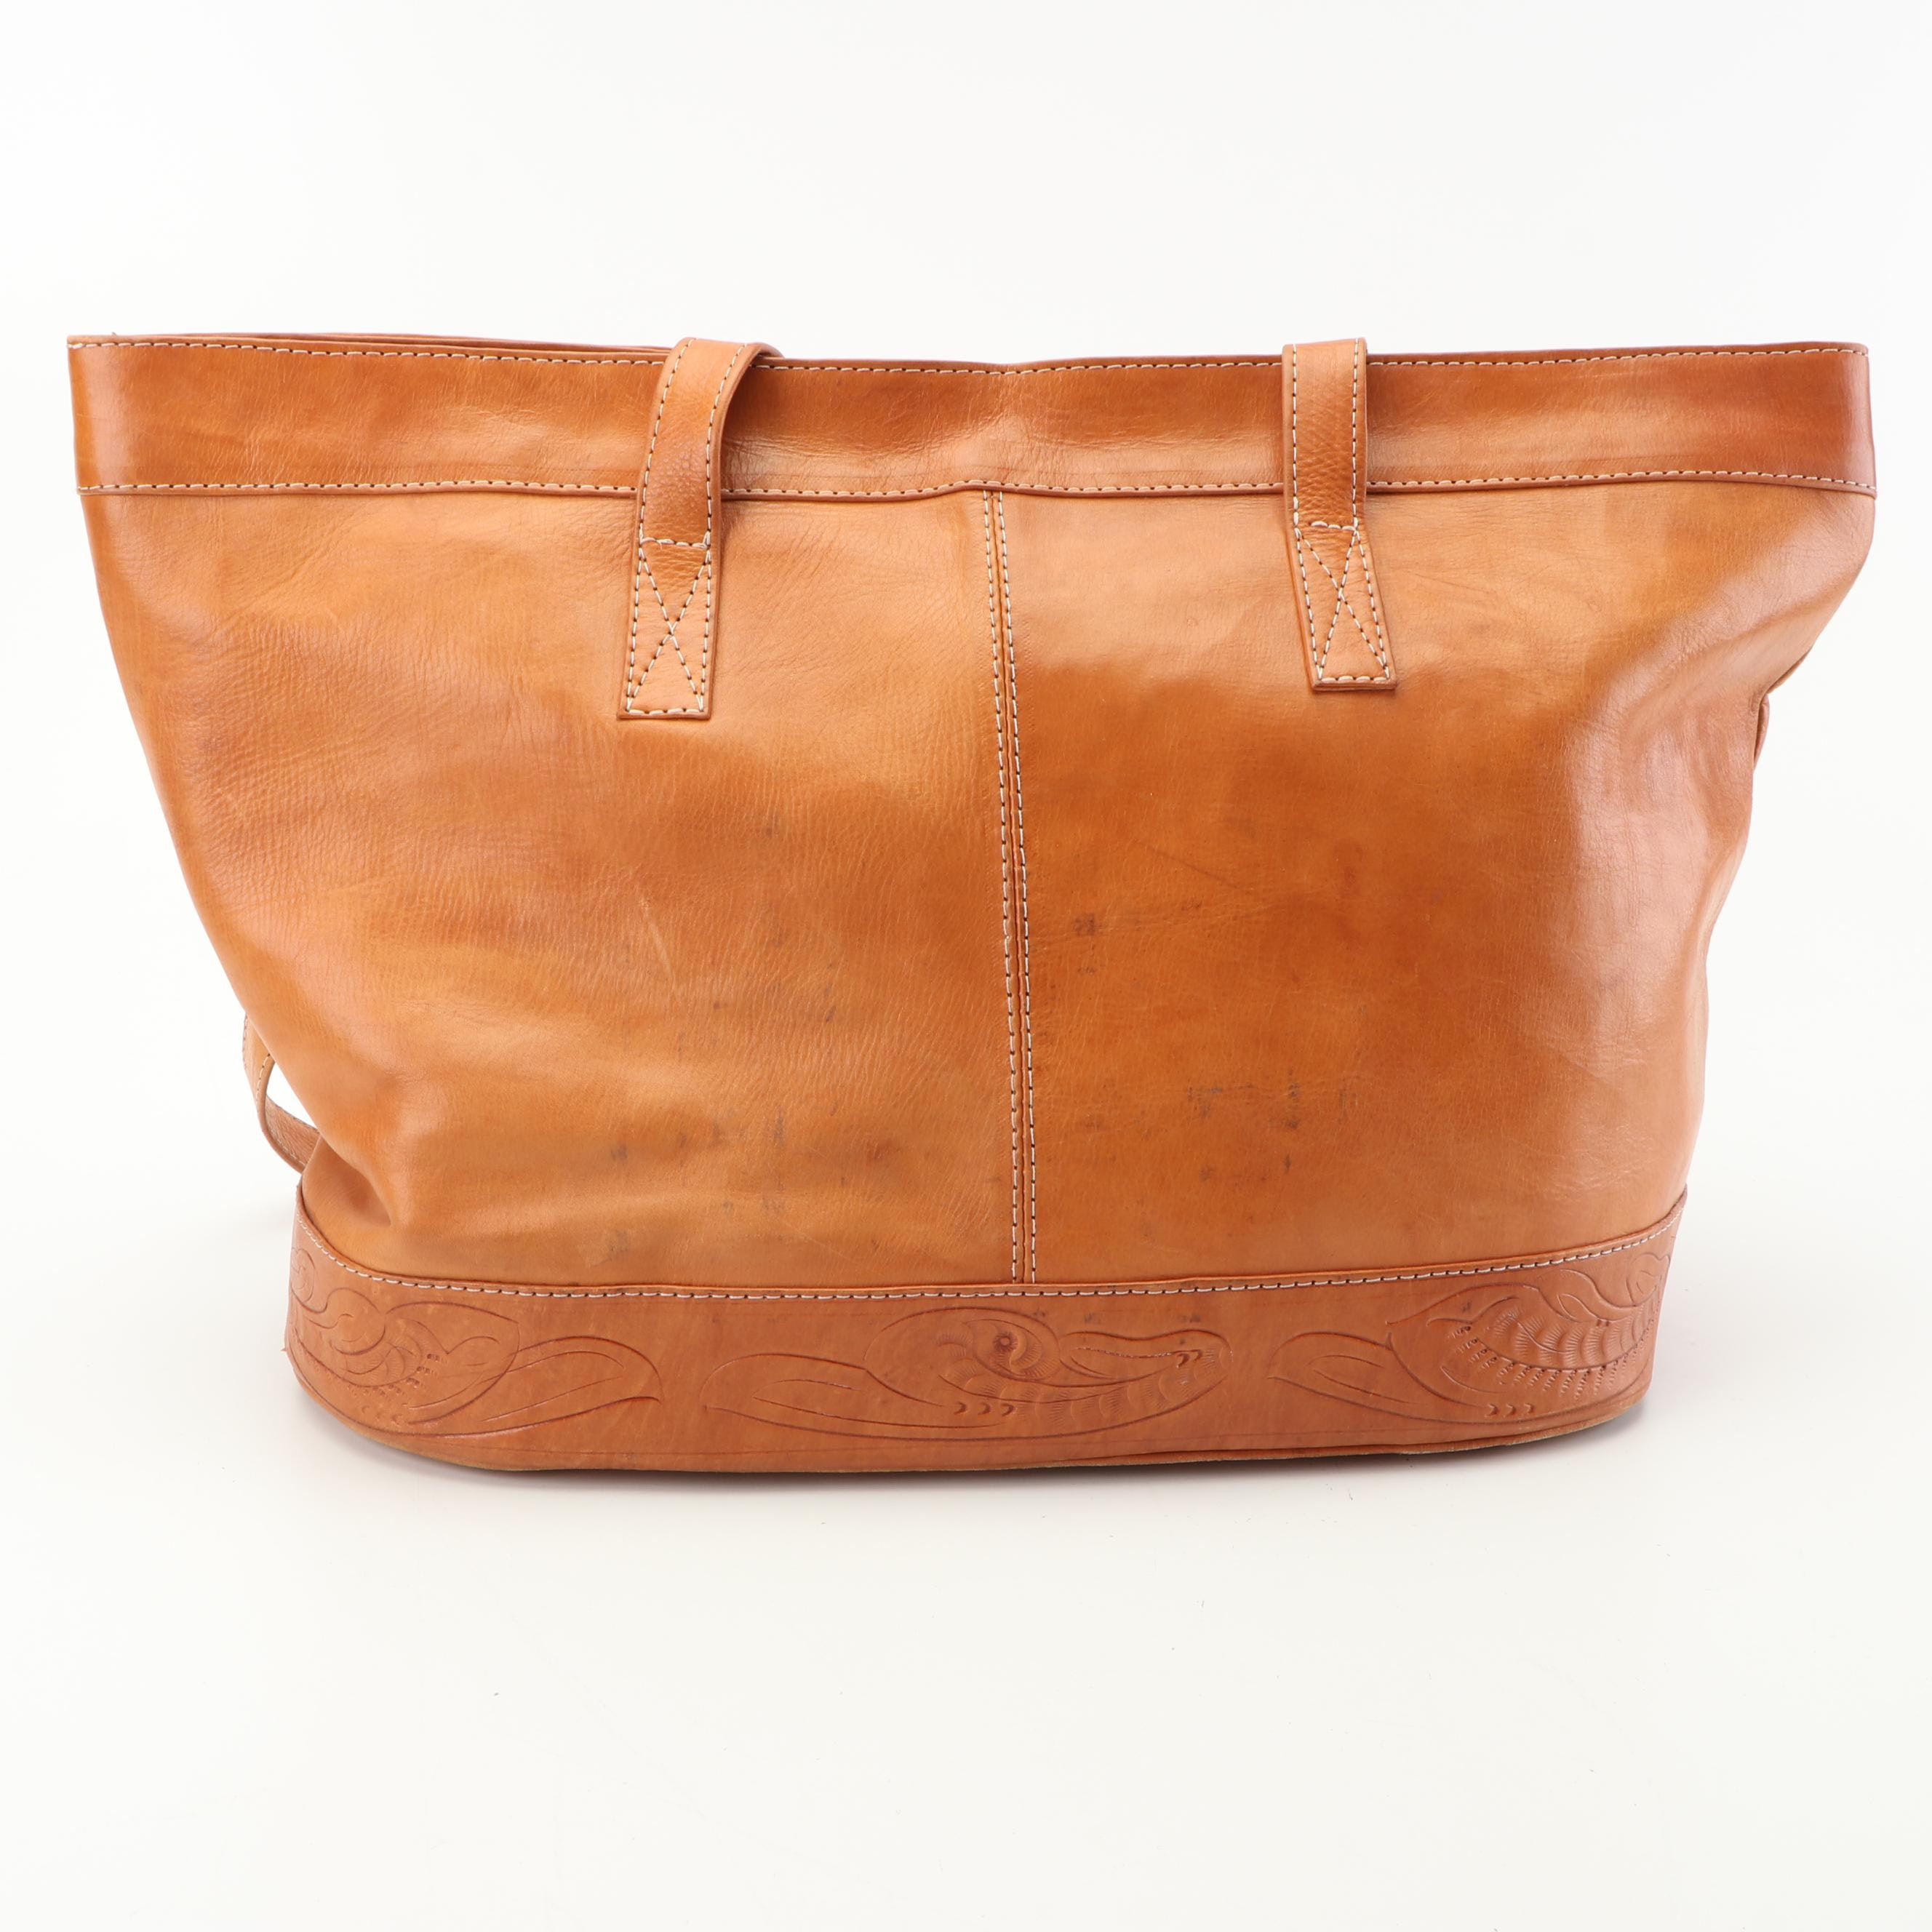 Leather Tote Bag with Tooled Leather Trim